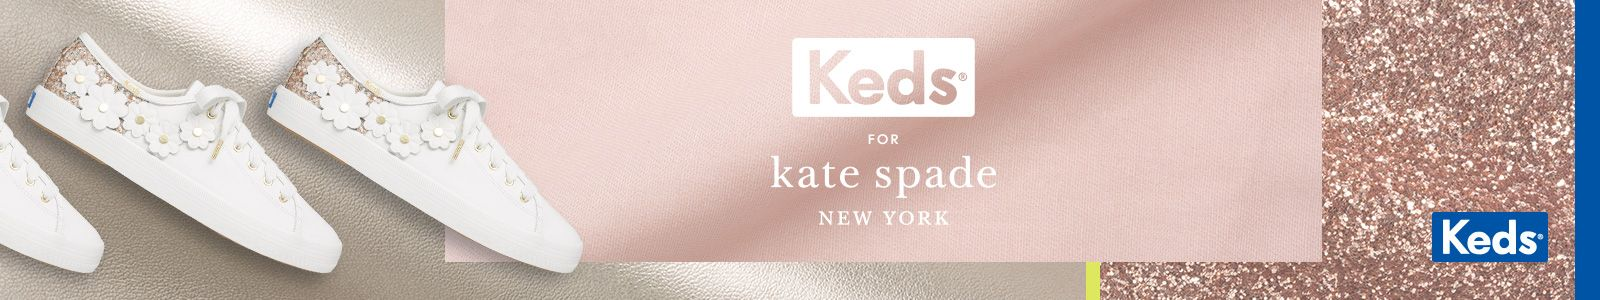 Keds, For Kate Spade, New York, Keds